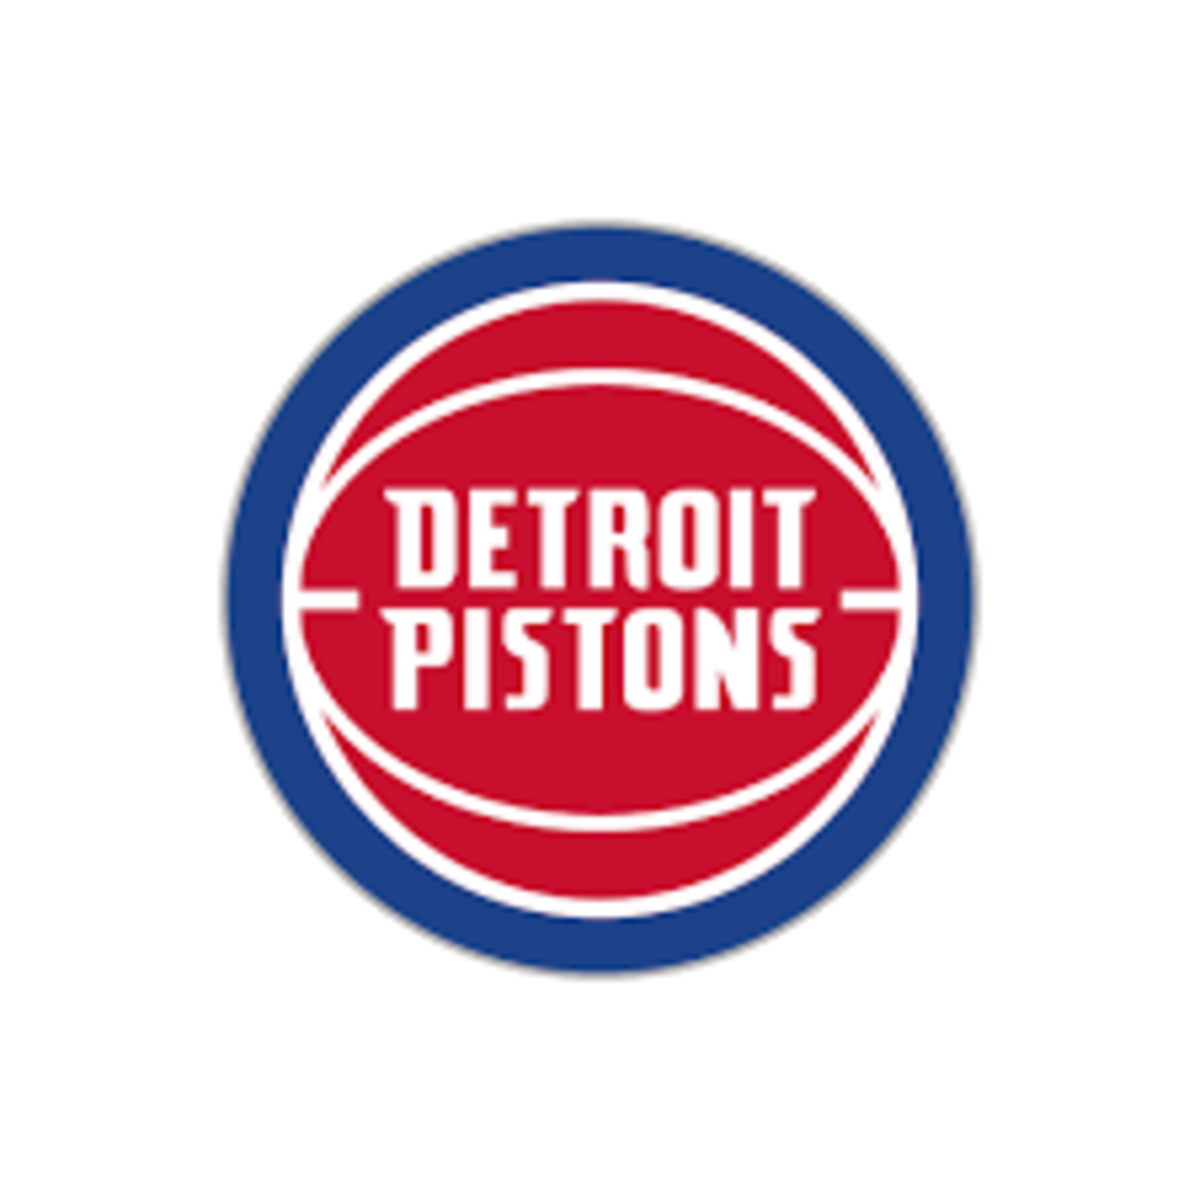 The Pistons have been stuck between rebuilding and being one of the lower playoff teams ever since their last championship in the Billups and Wallace era.